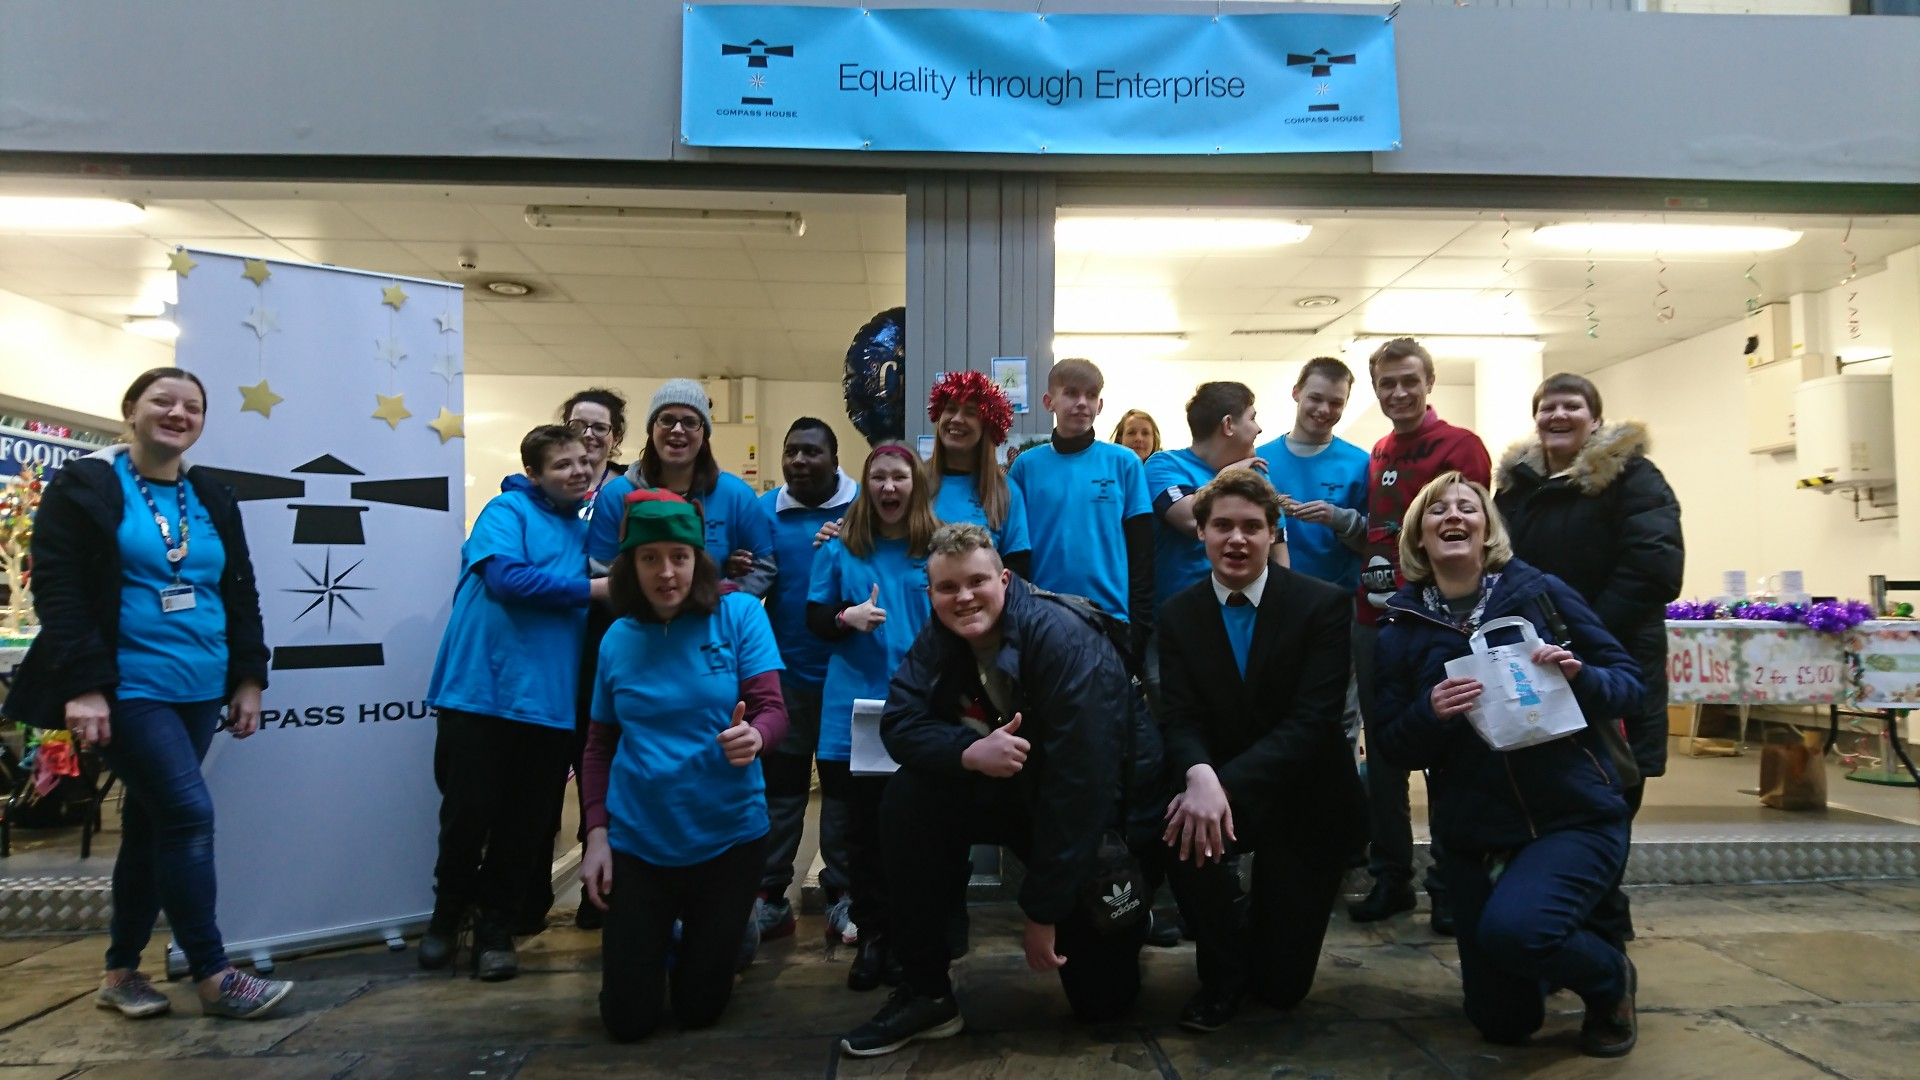 Group photo - kirkgate market